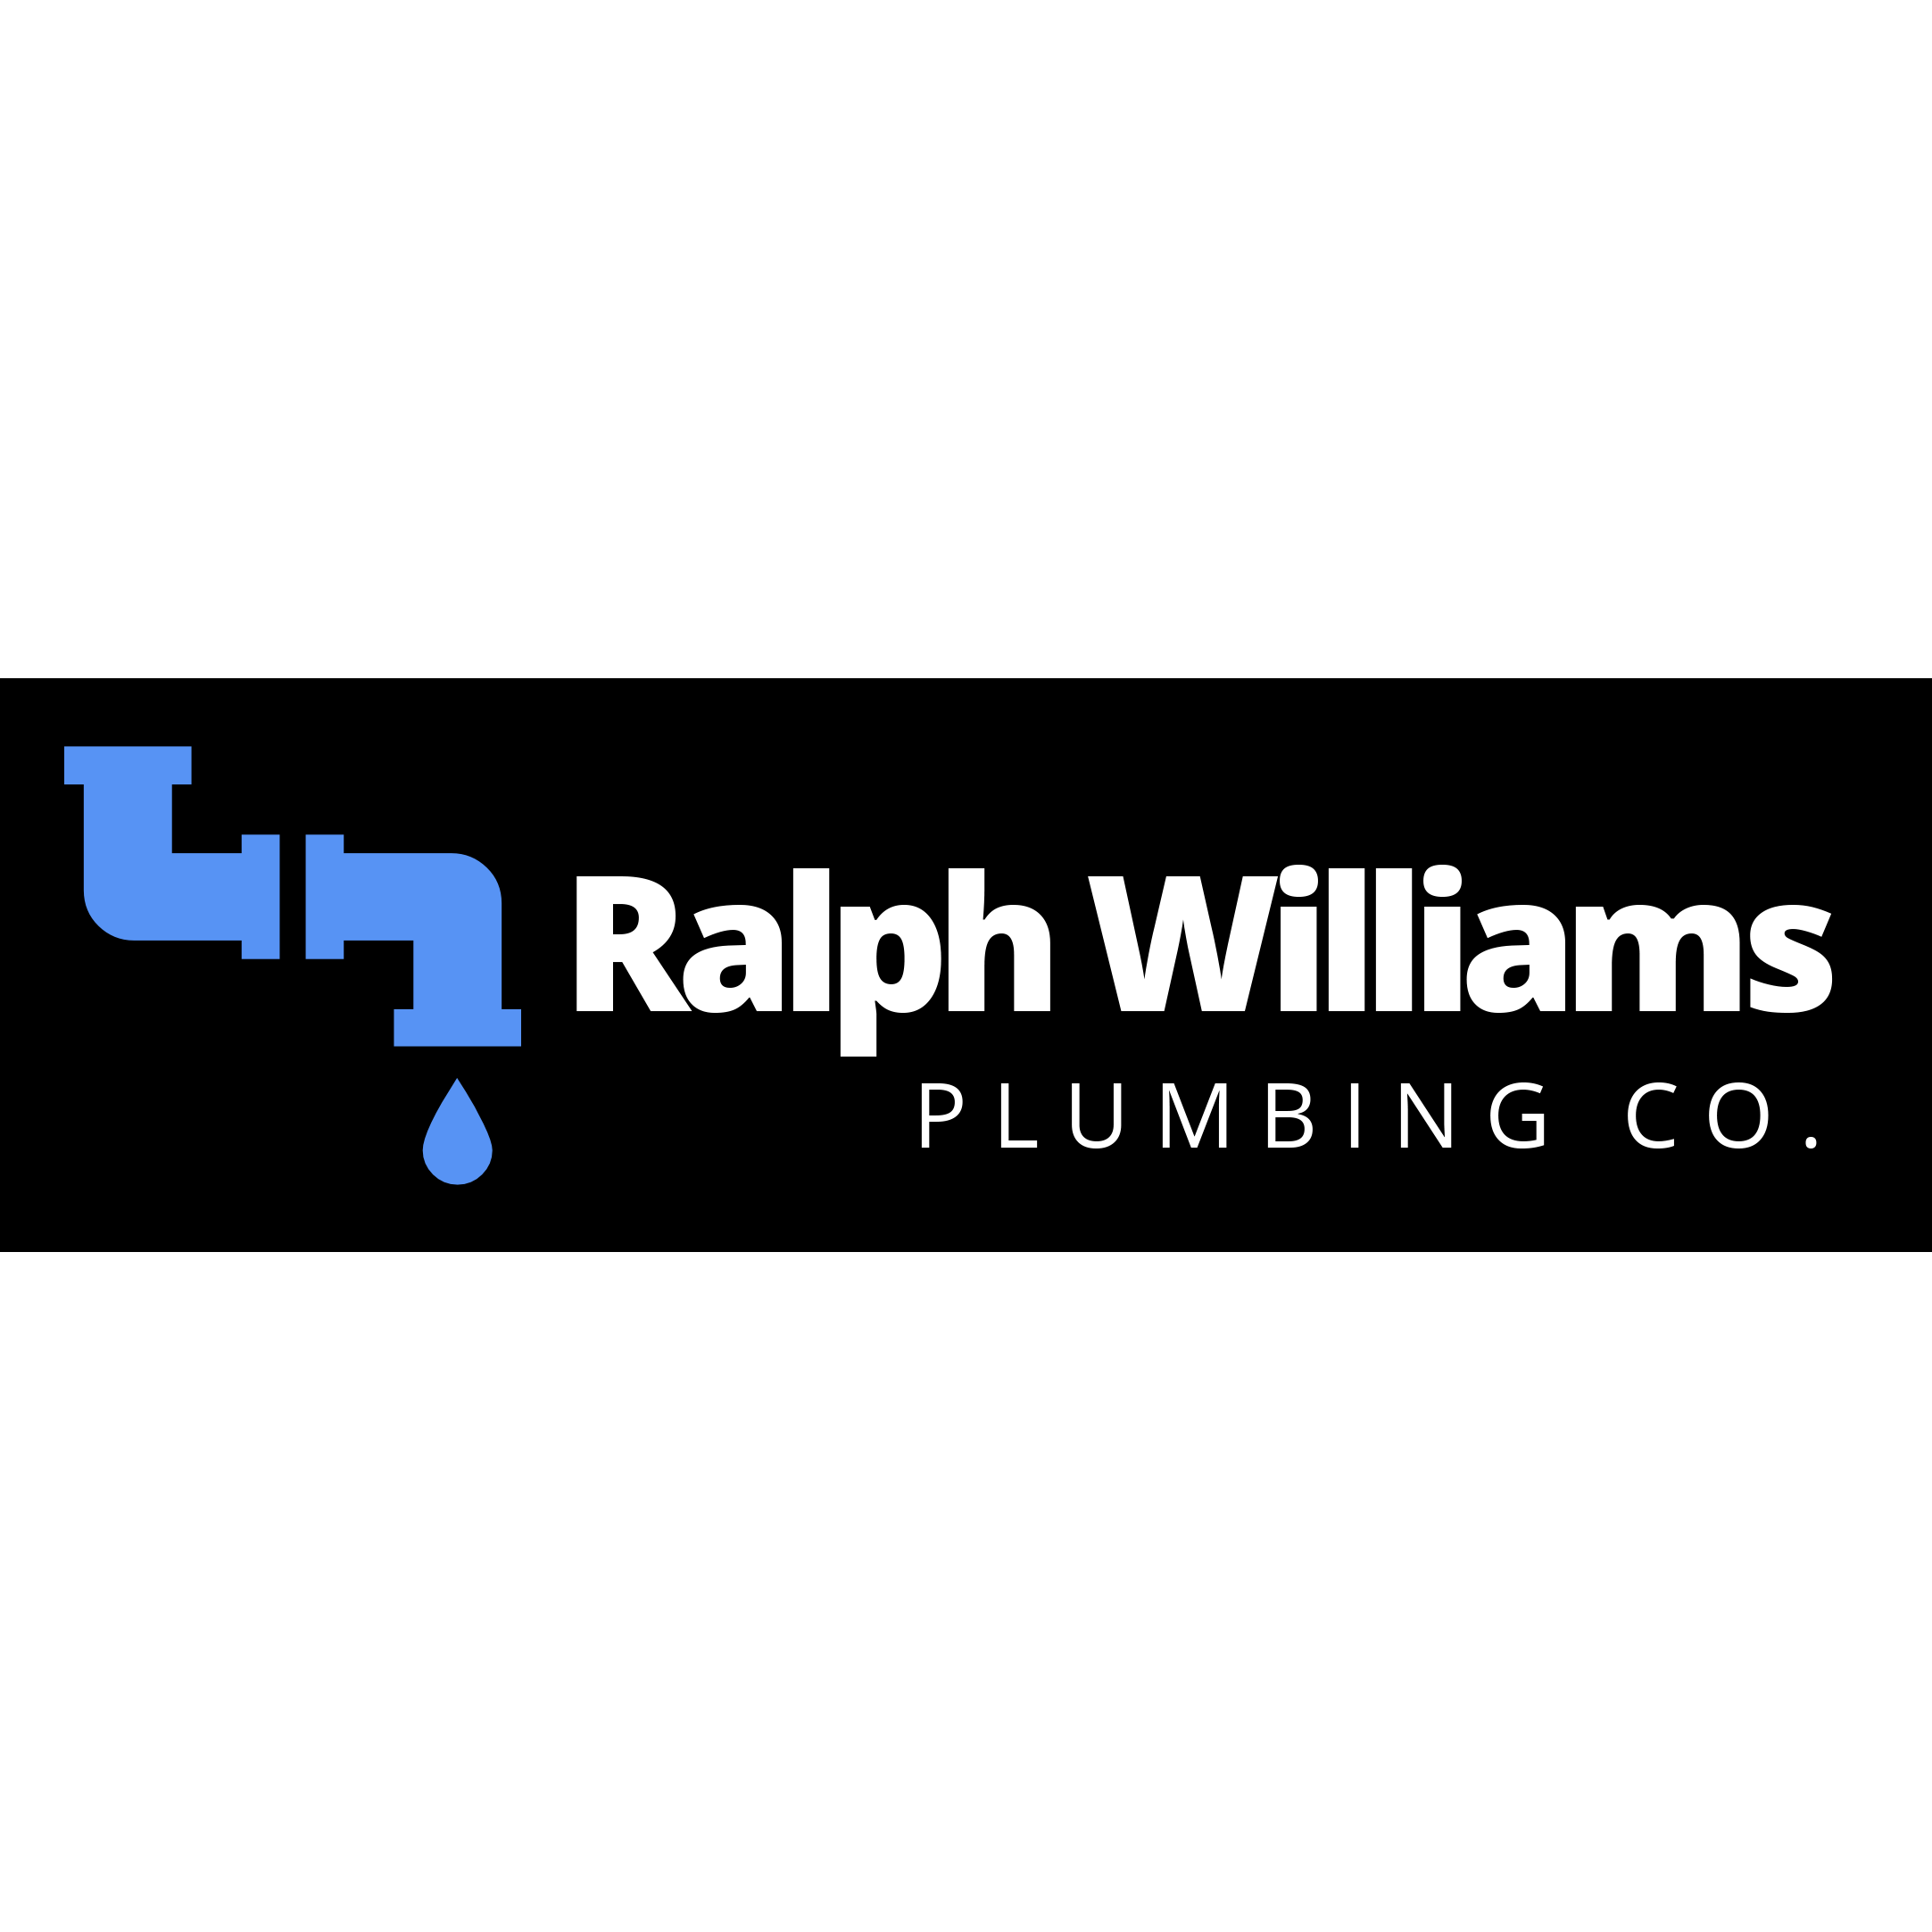 Ralph Williams Plumbing Co. image 3